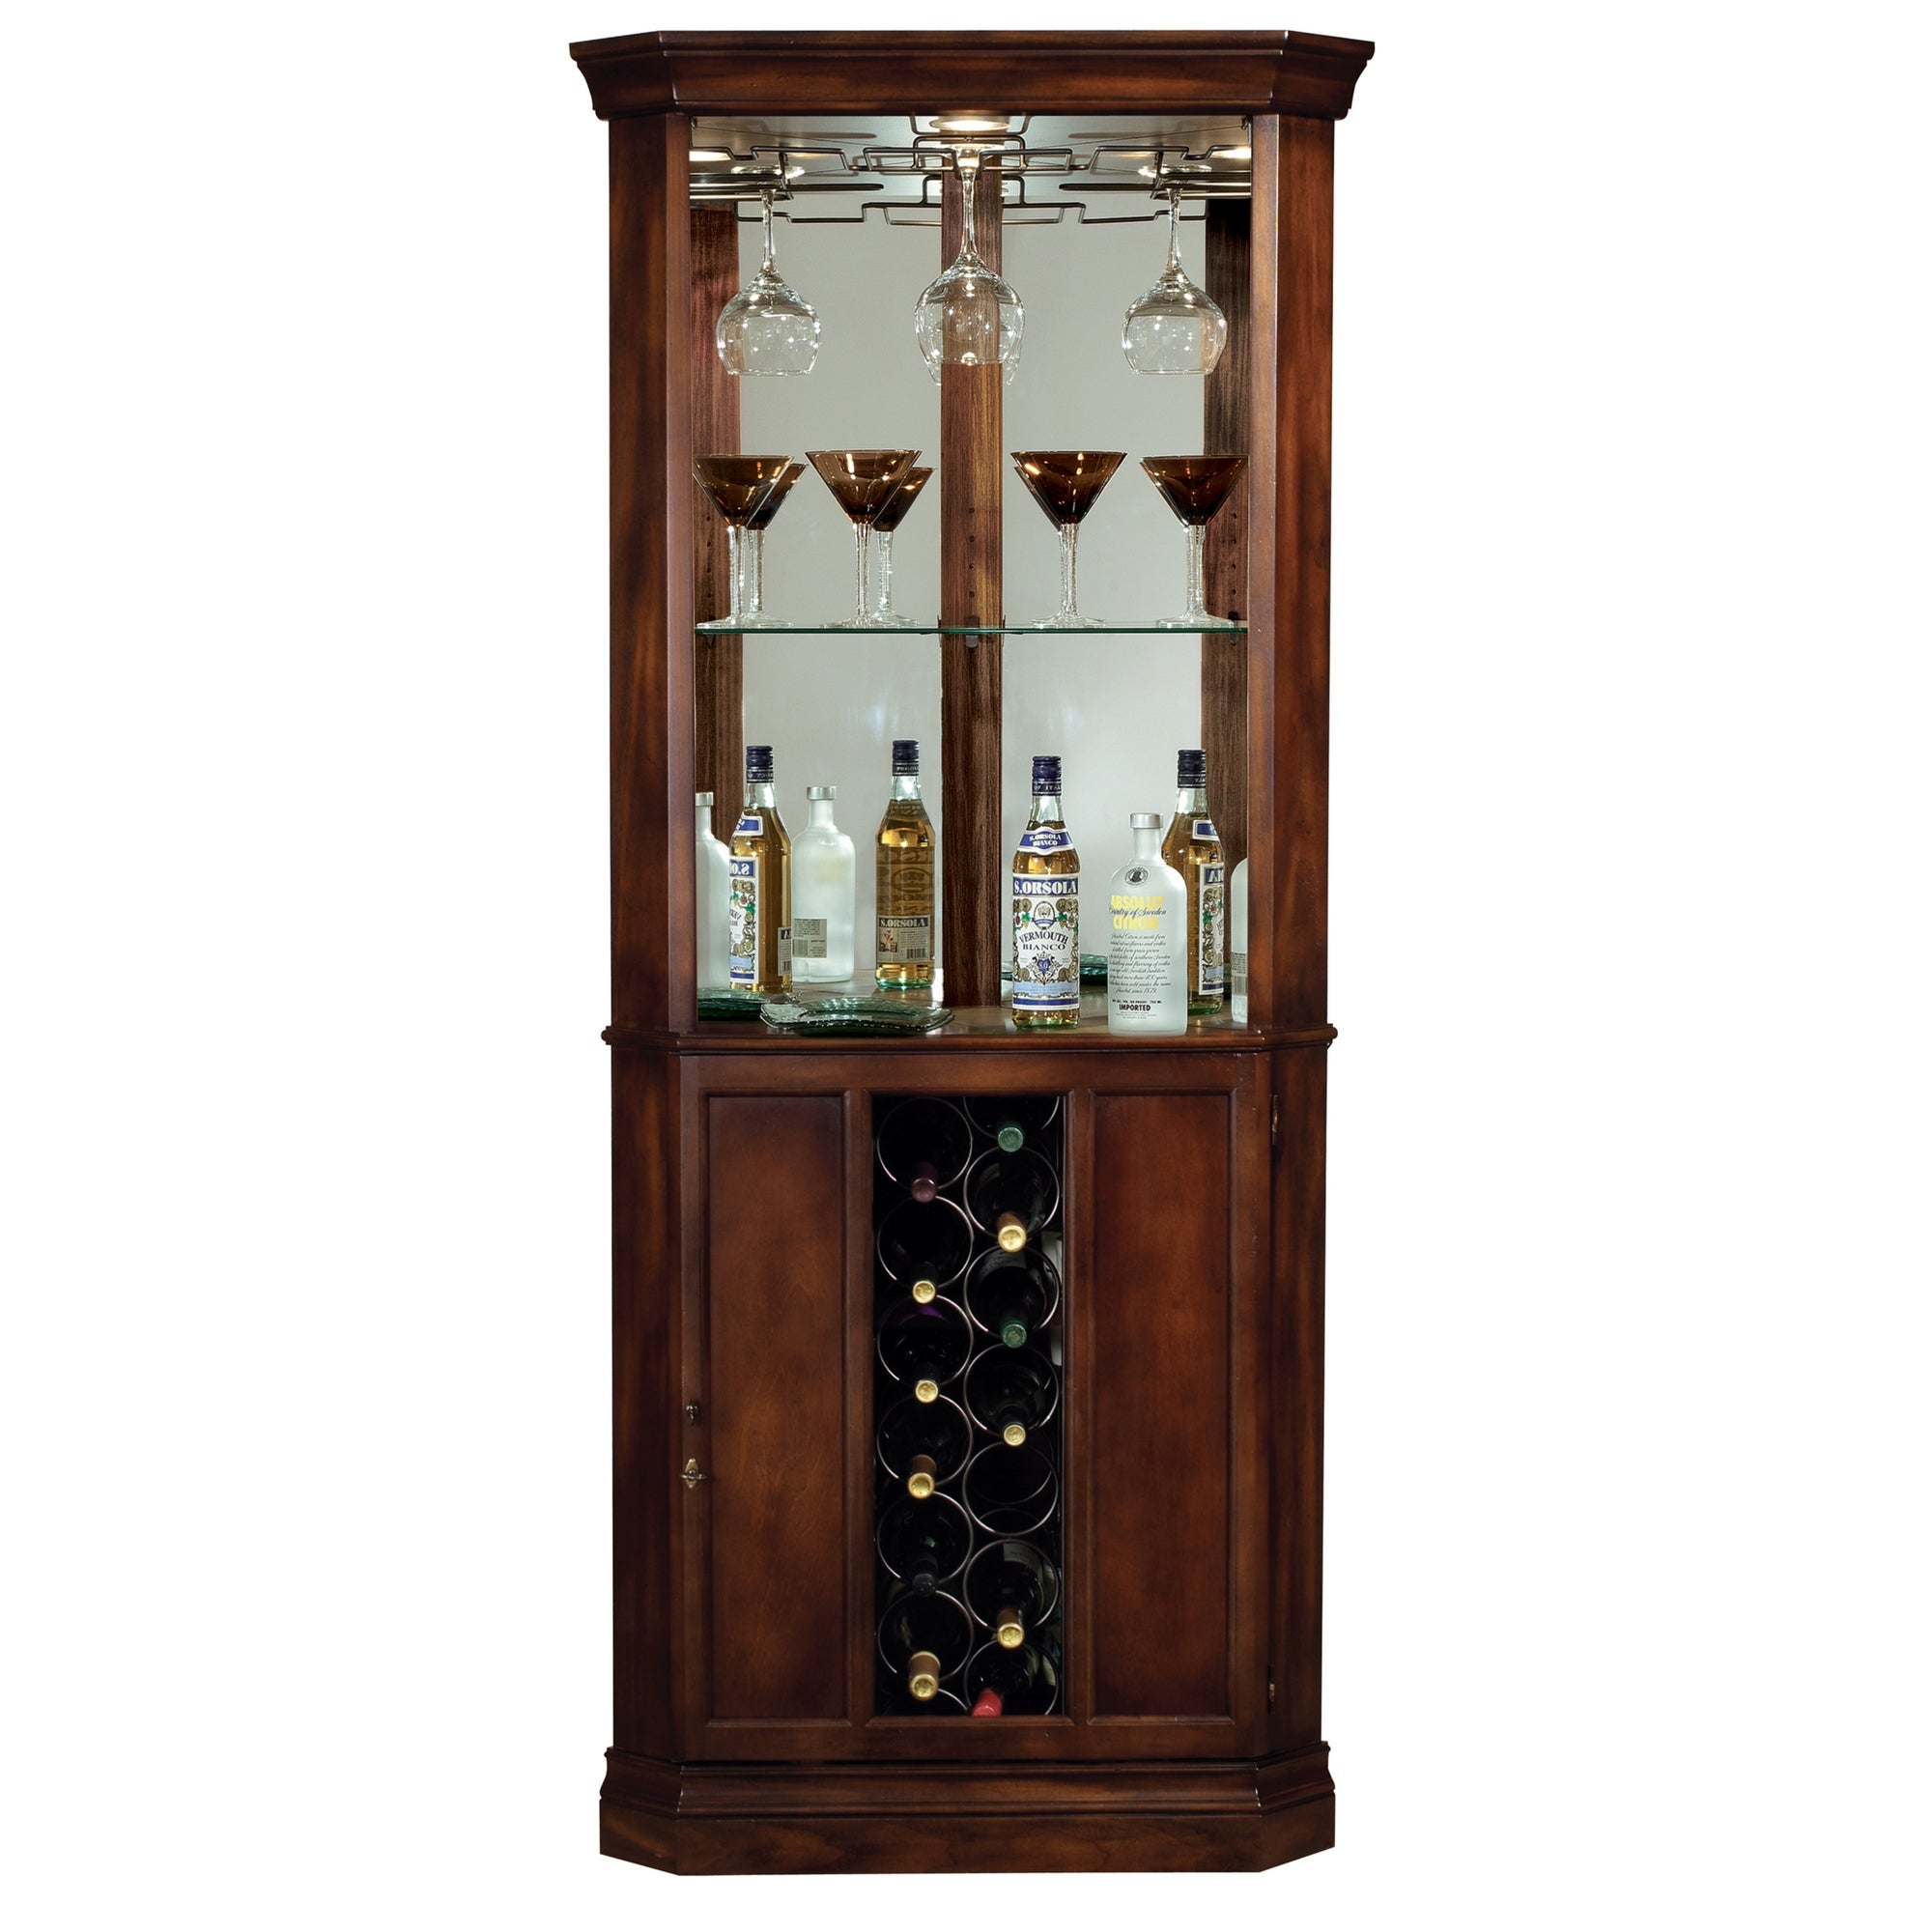 Howard Miller Piedmont Solid Wood Corner Liquor Or Wine Cabinet 76 In High X 32 5 In Wide X 19 In Deep Overstock 23439257